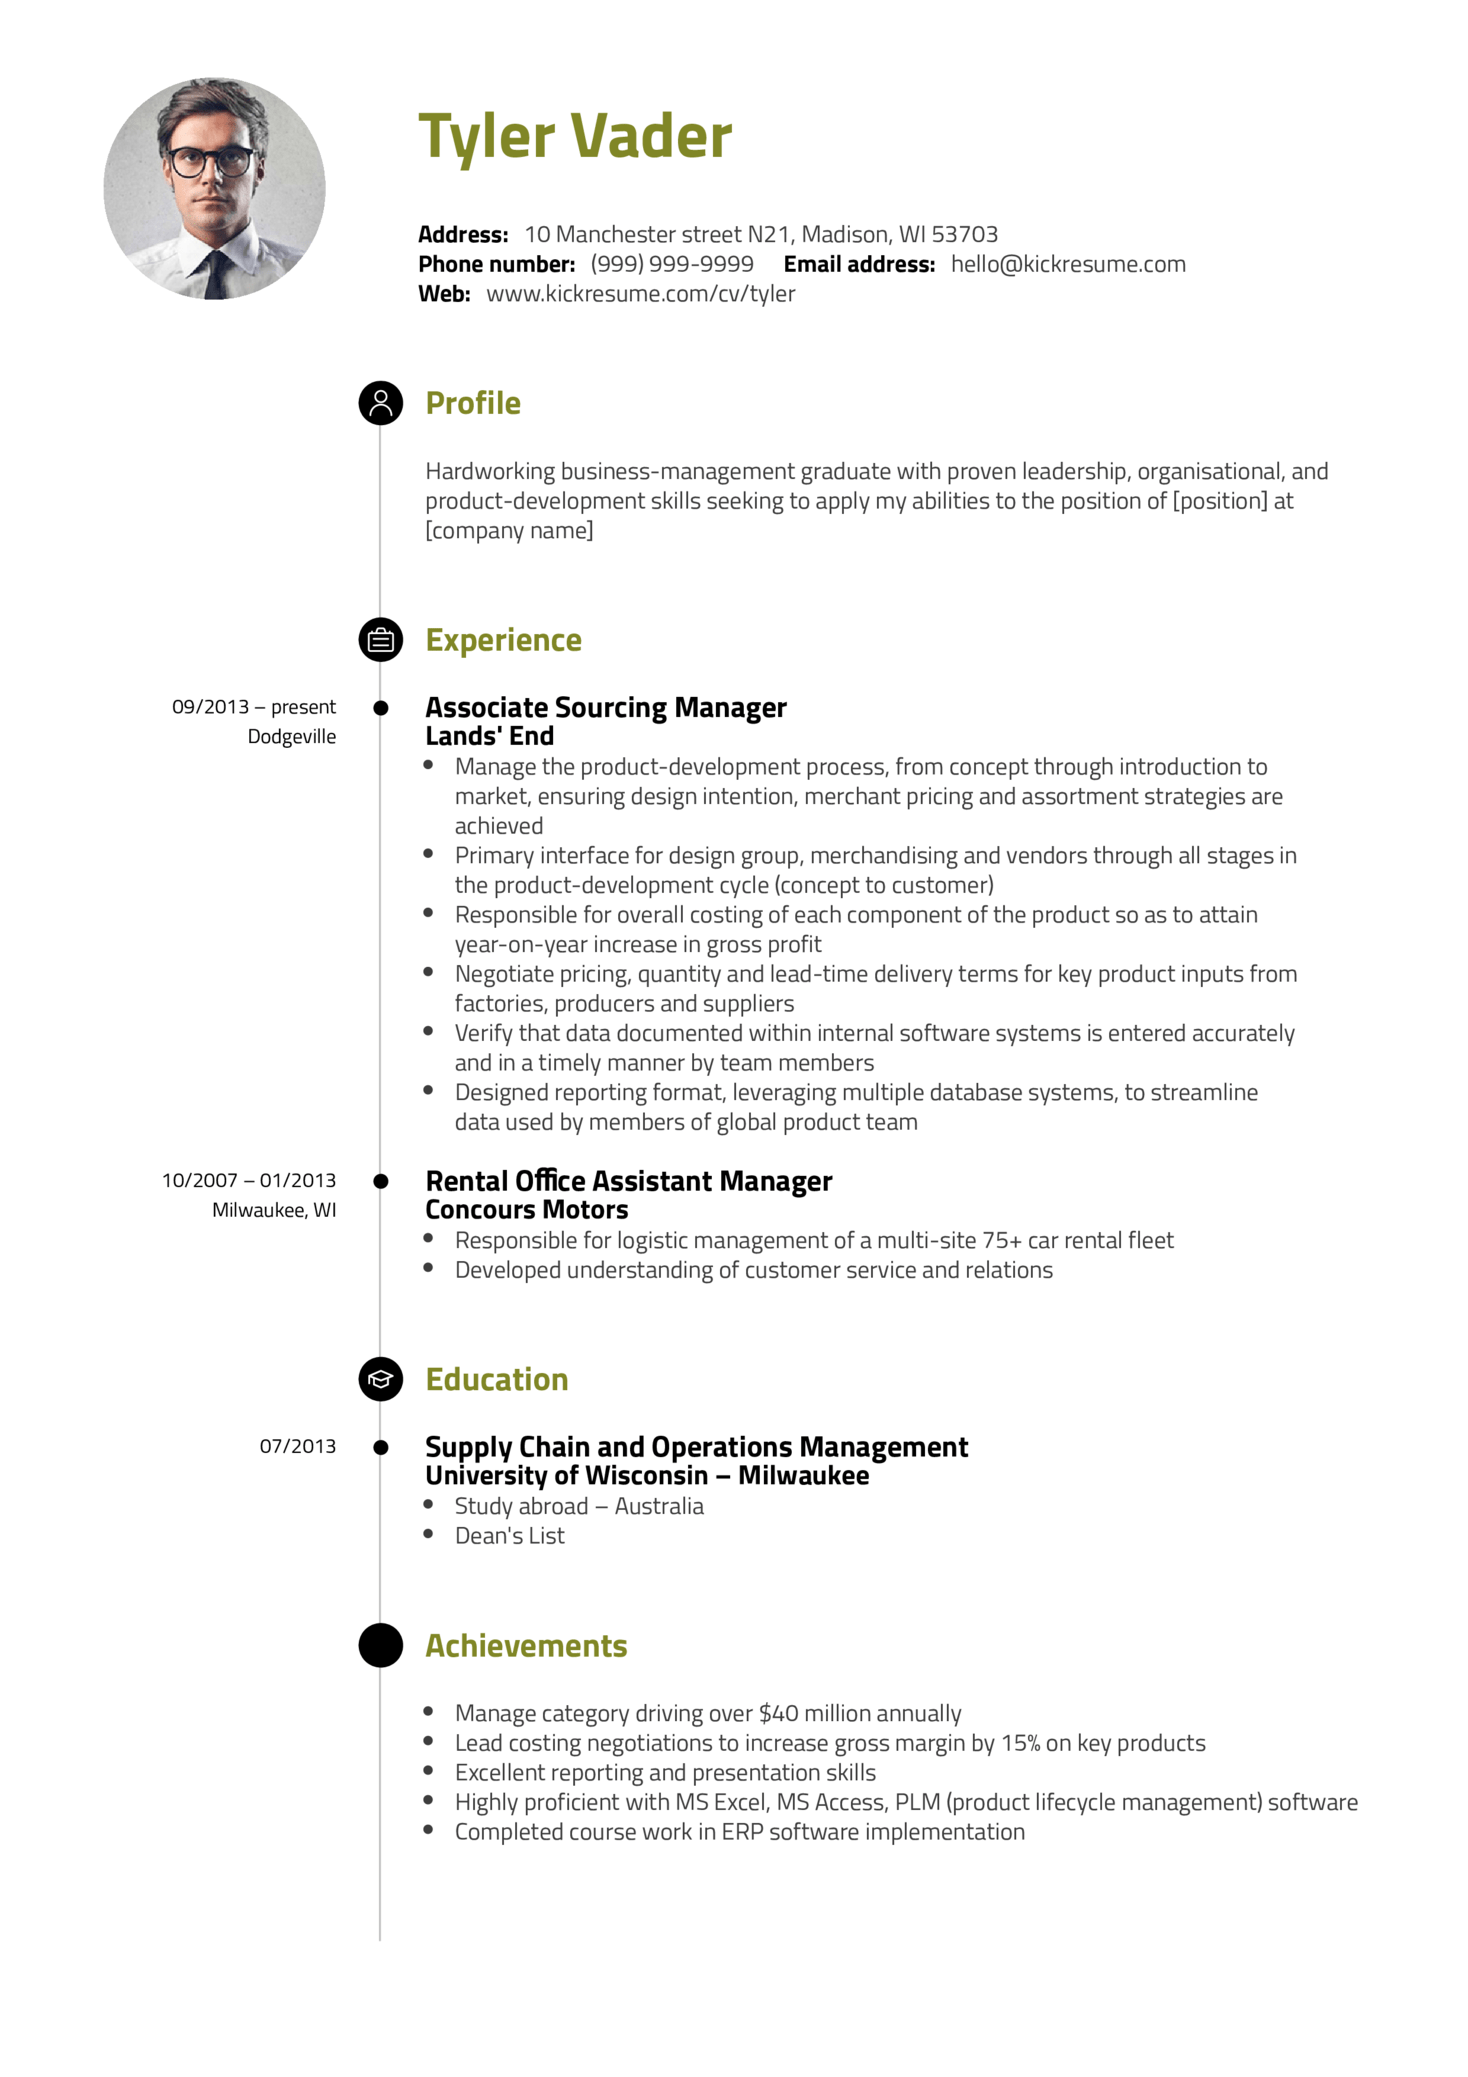 Business Management Graduate Cv Example Kickresume